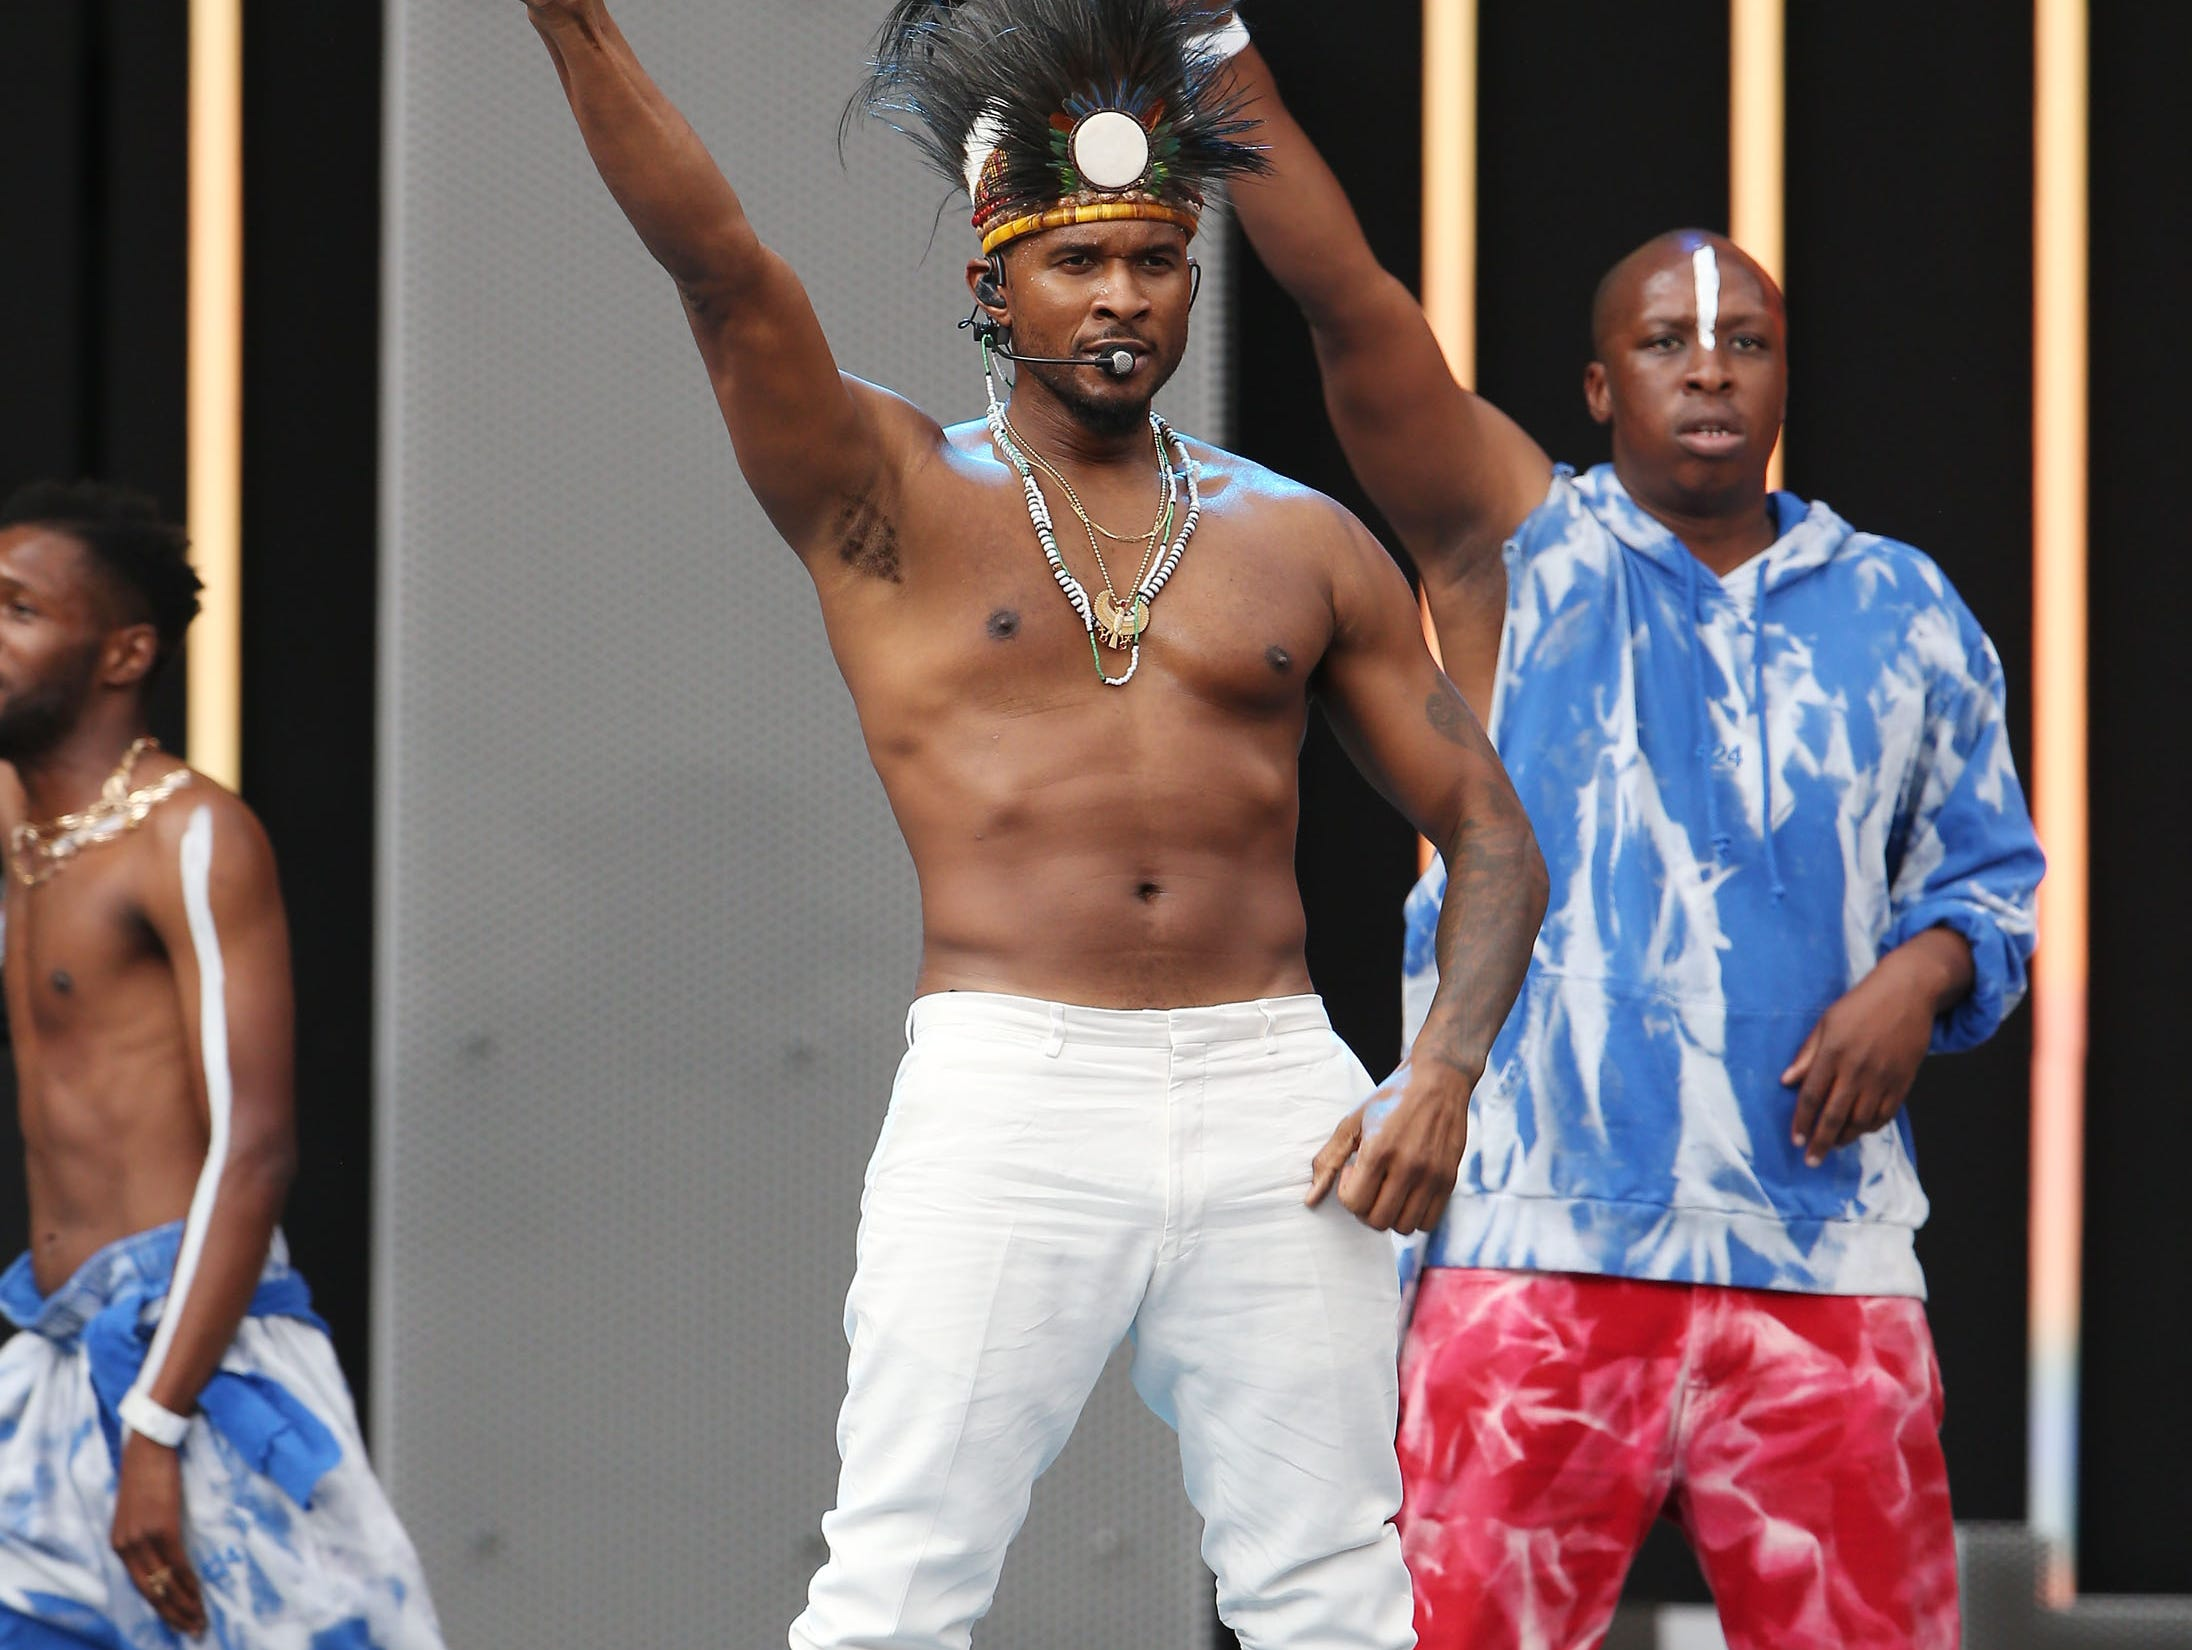 JOHANNESBURG, SOUTH AFRICA - DECEMBER 02:  Usher performs during the Global Citizen Festival: Mandela 100 at FNB Stadium on December 2, 2018 in Johannesburg, South Africa.  (Photo by Jemal Countess/Getty Images for Global Citizen Festival: Mandela 100) ORG XMIT: 775264426 ORIG FILE ID: 1067588374